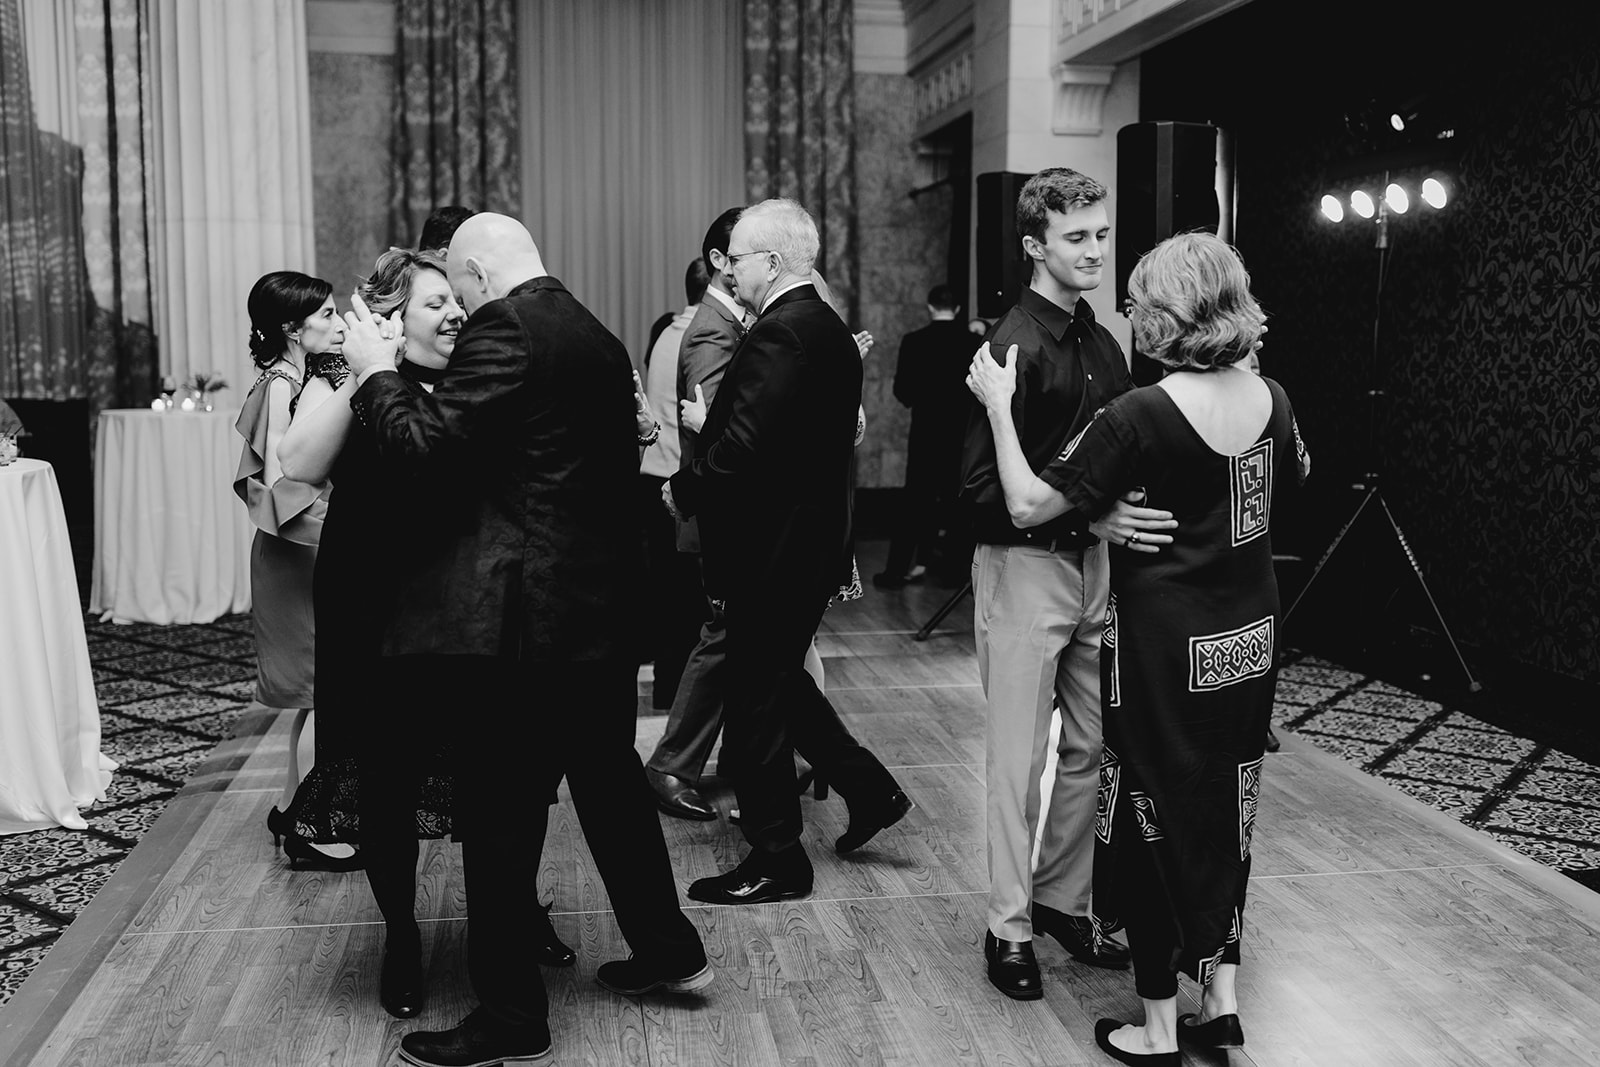 Guests dancing on the dance floor at a wedding reception